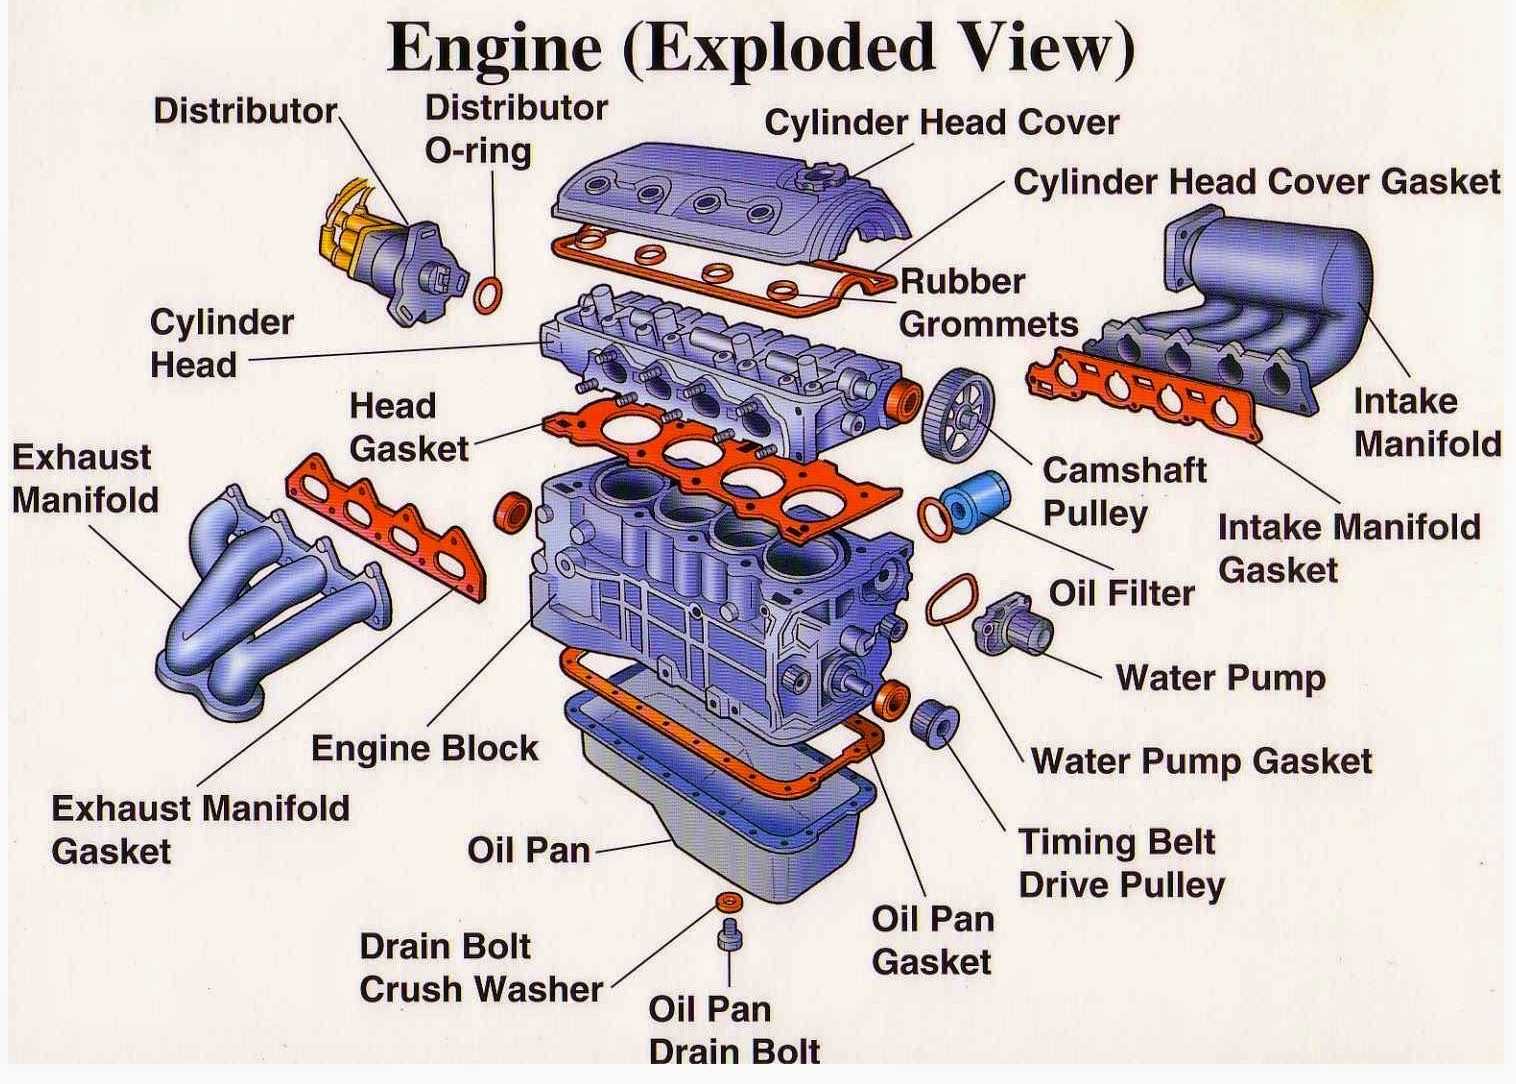 engine parts exploded view electrical engineering world library ee pics figures